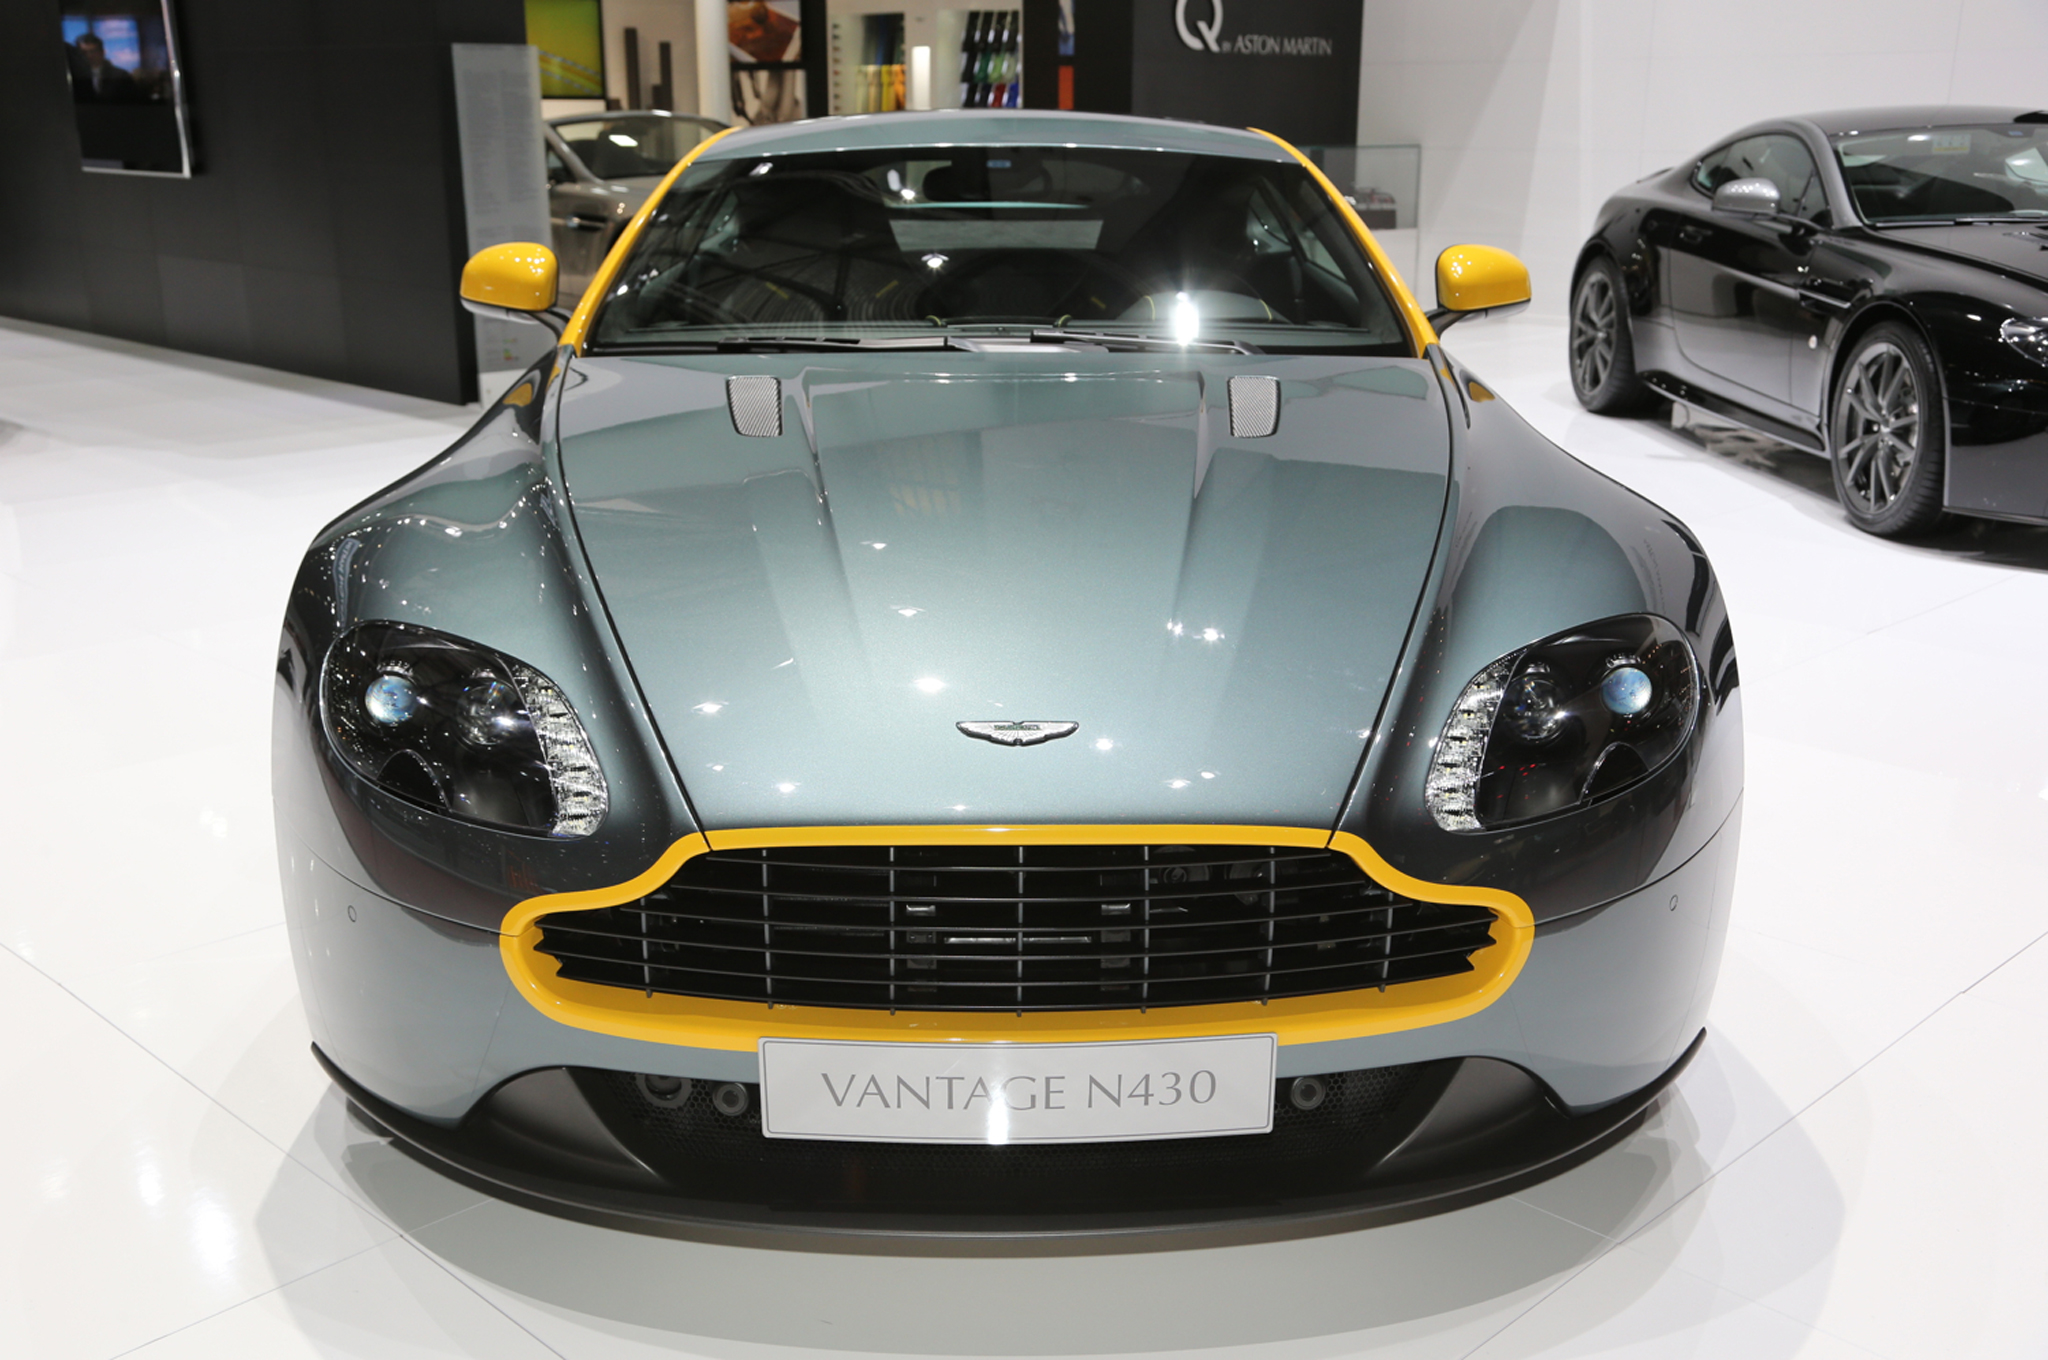 2015 aston martin v8 vantage gt riding sporty and luxury ride 63 cars performance reviews. Black Bedroom Furniture Sets. Home Design Ideas